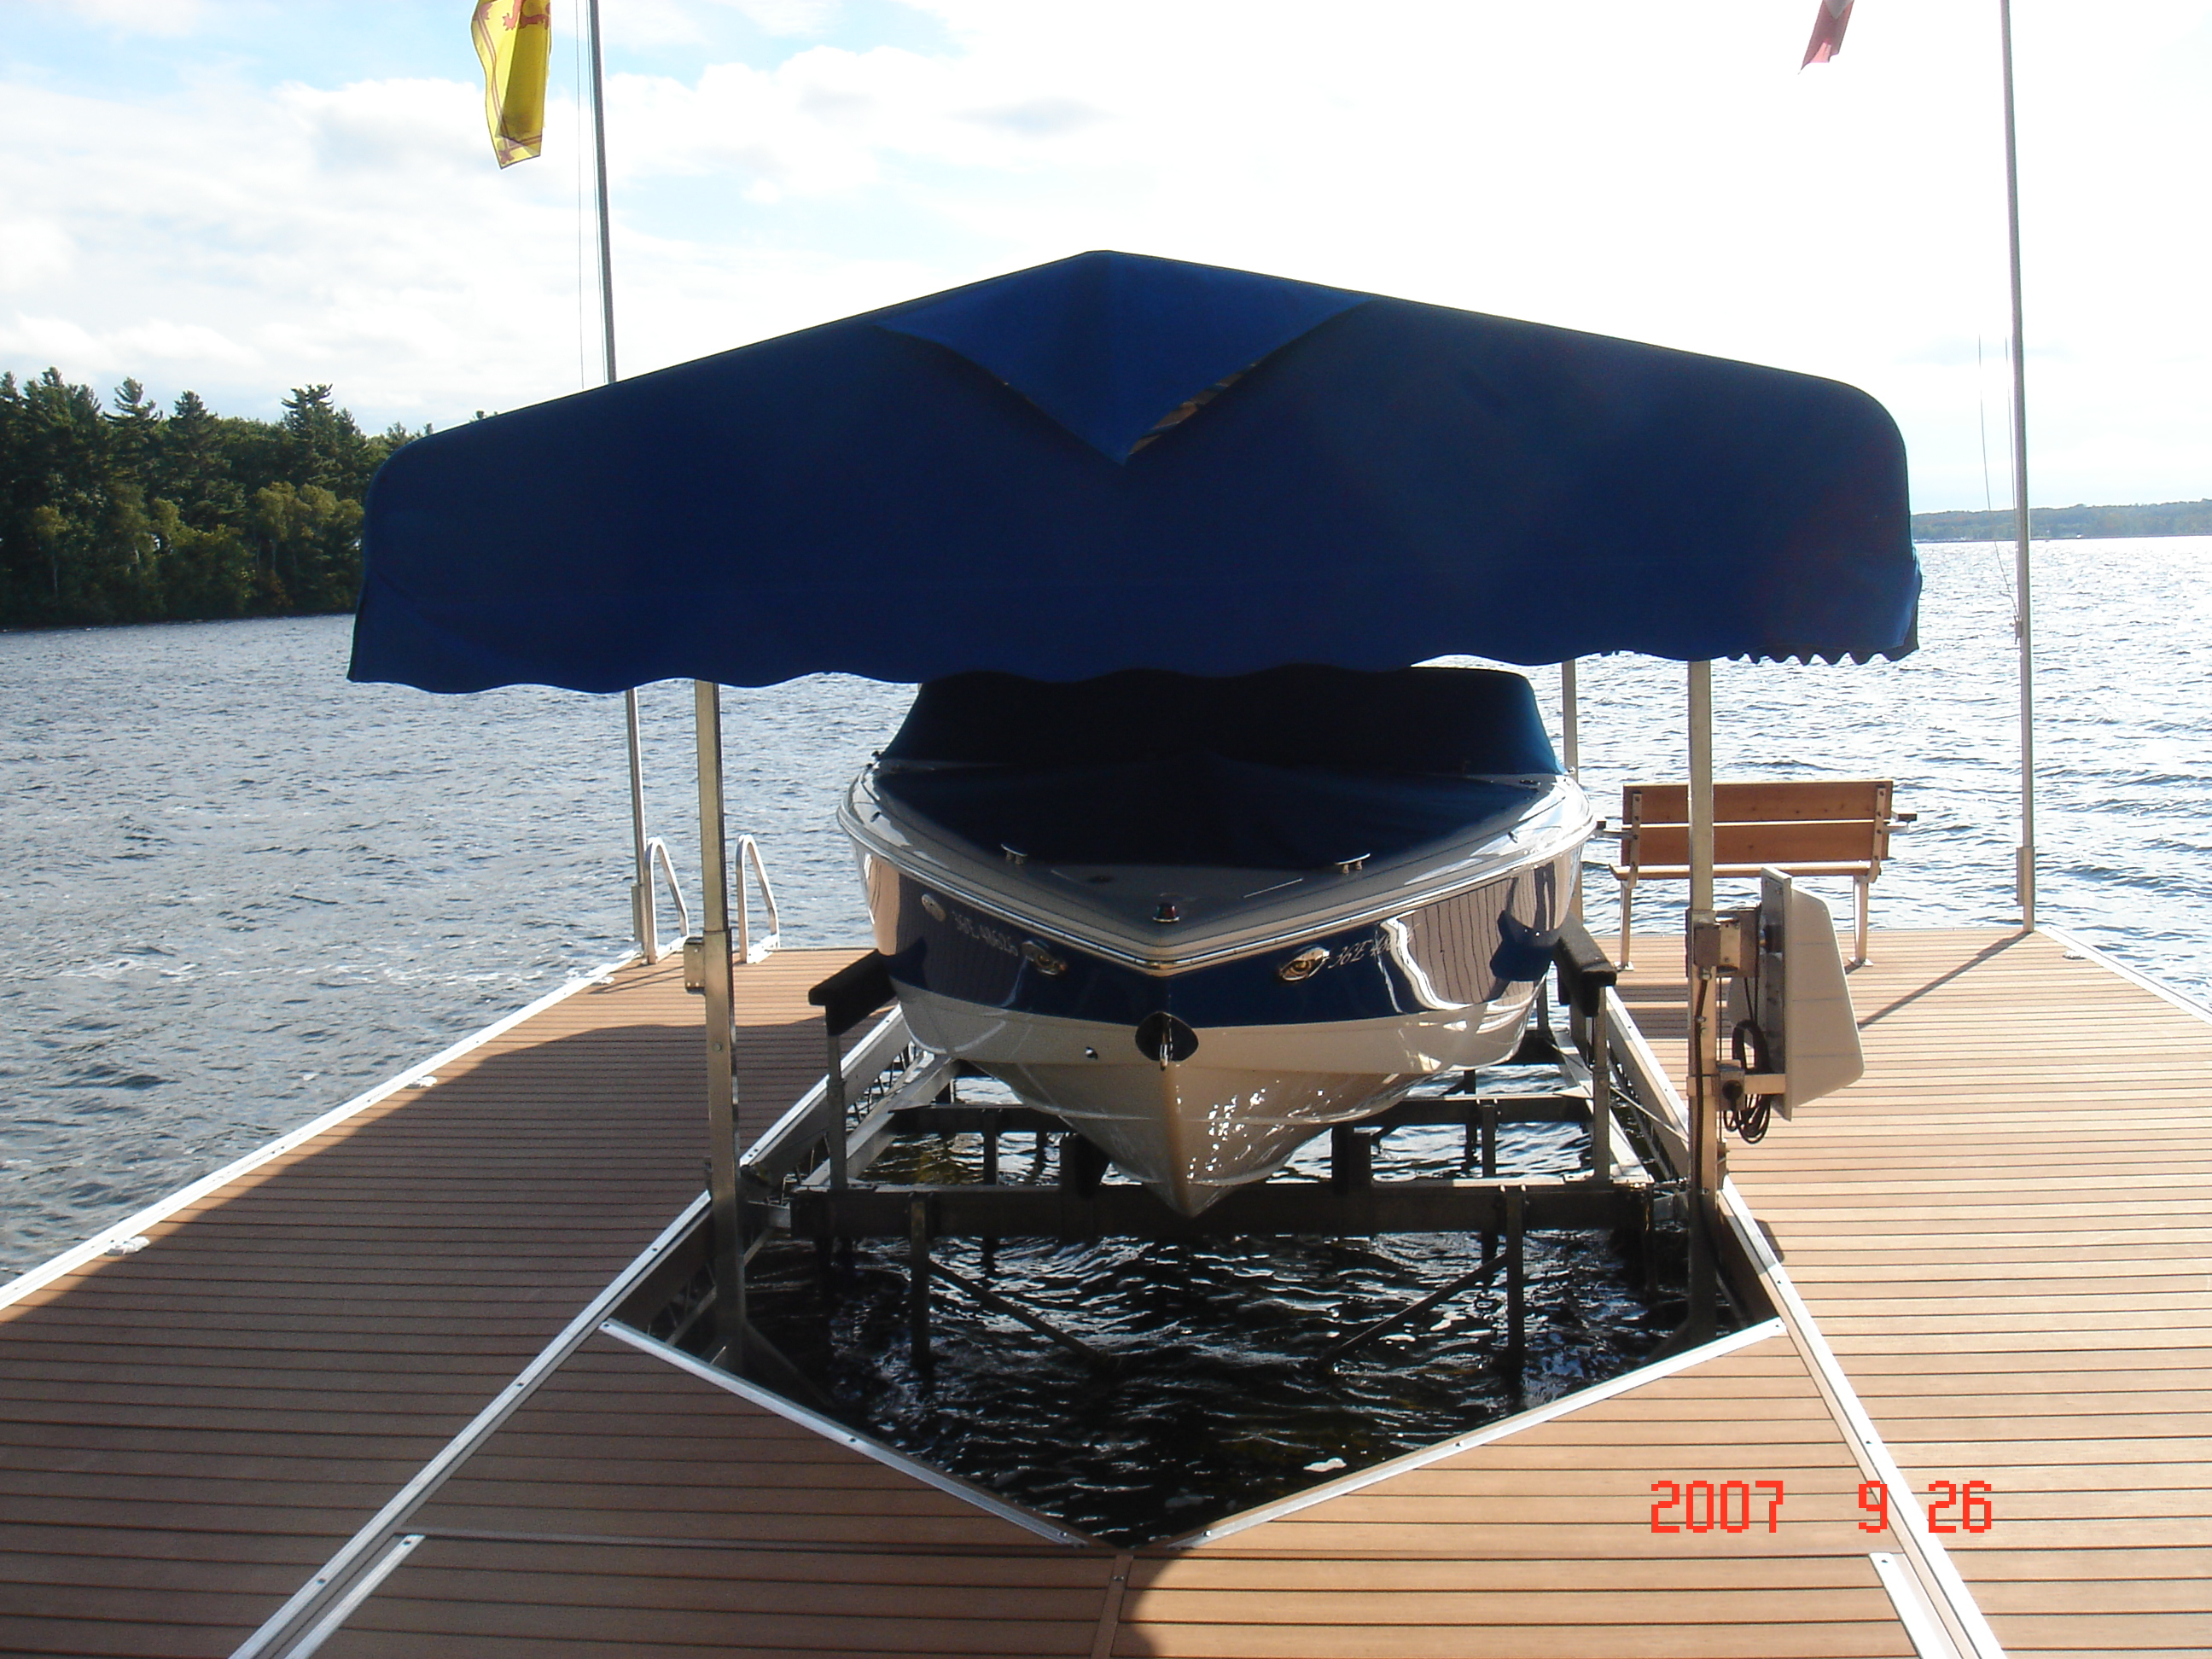 Boat Lift And Dock >> Roof Systems for Boats & Sea-Doos – R & J Machine